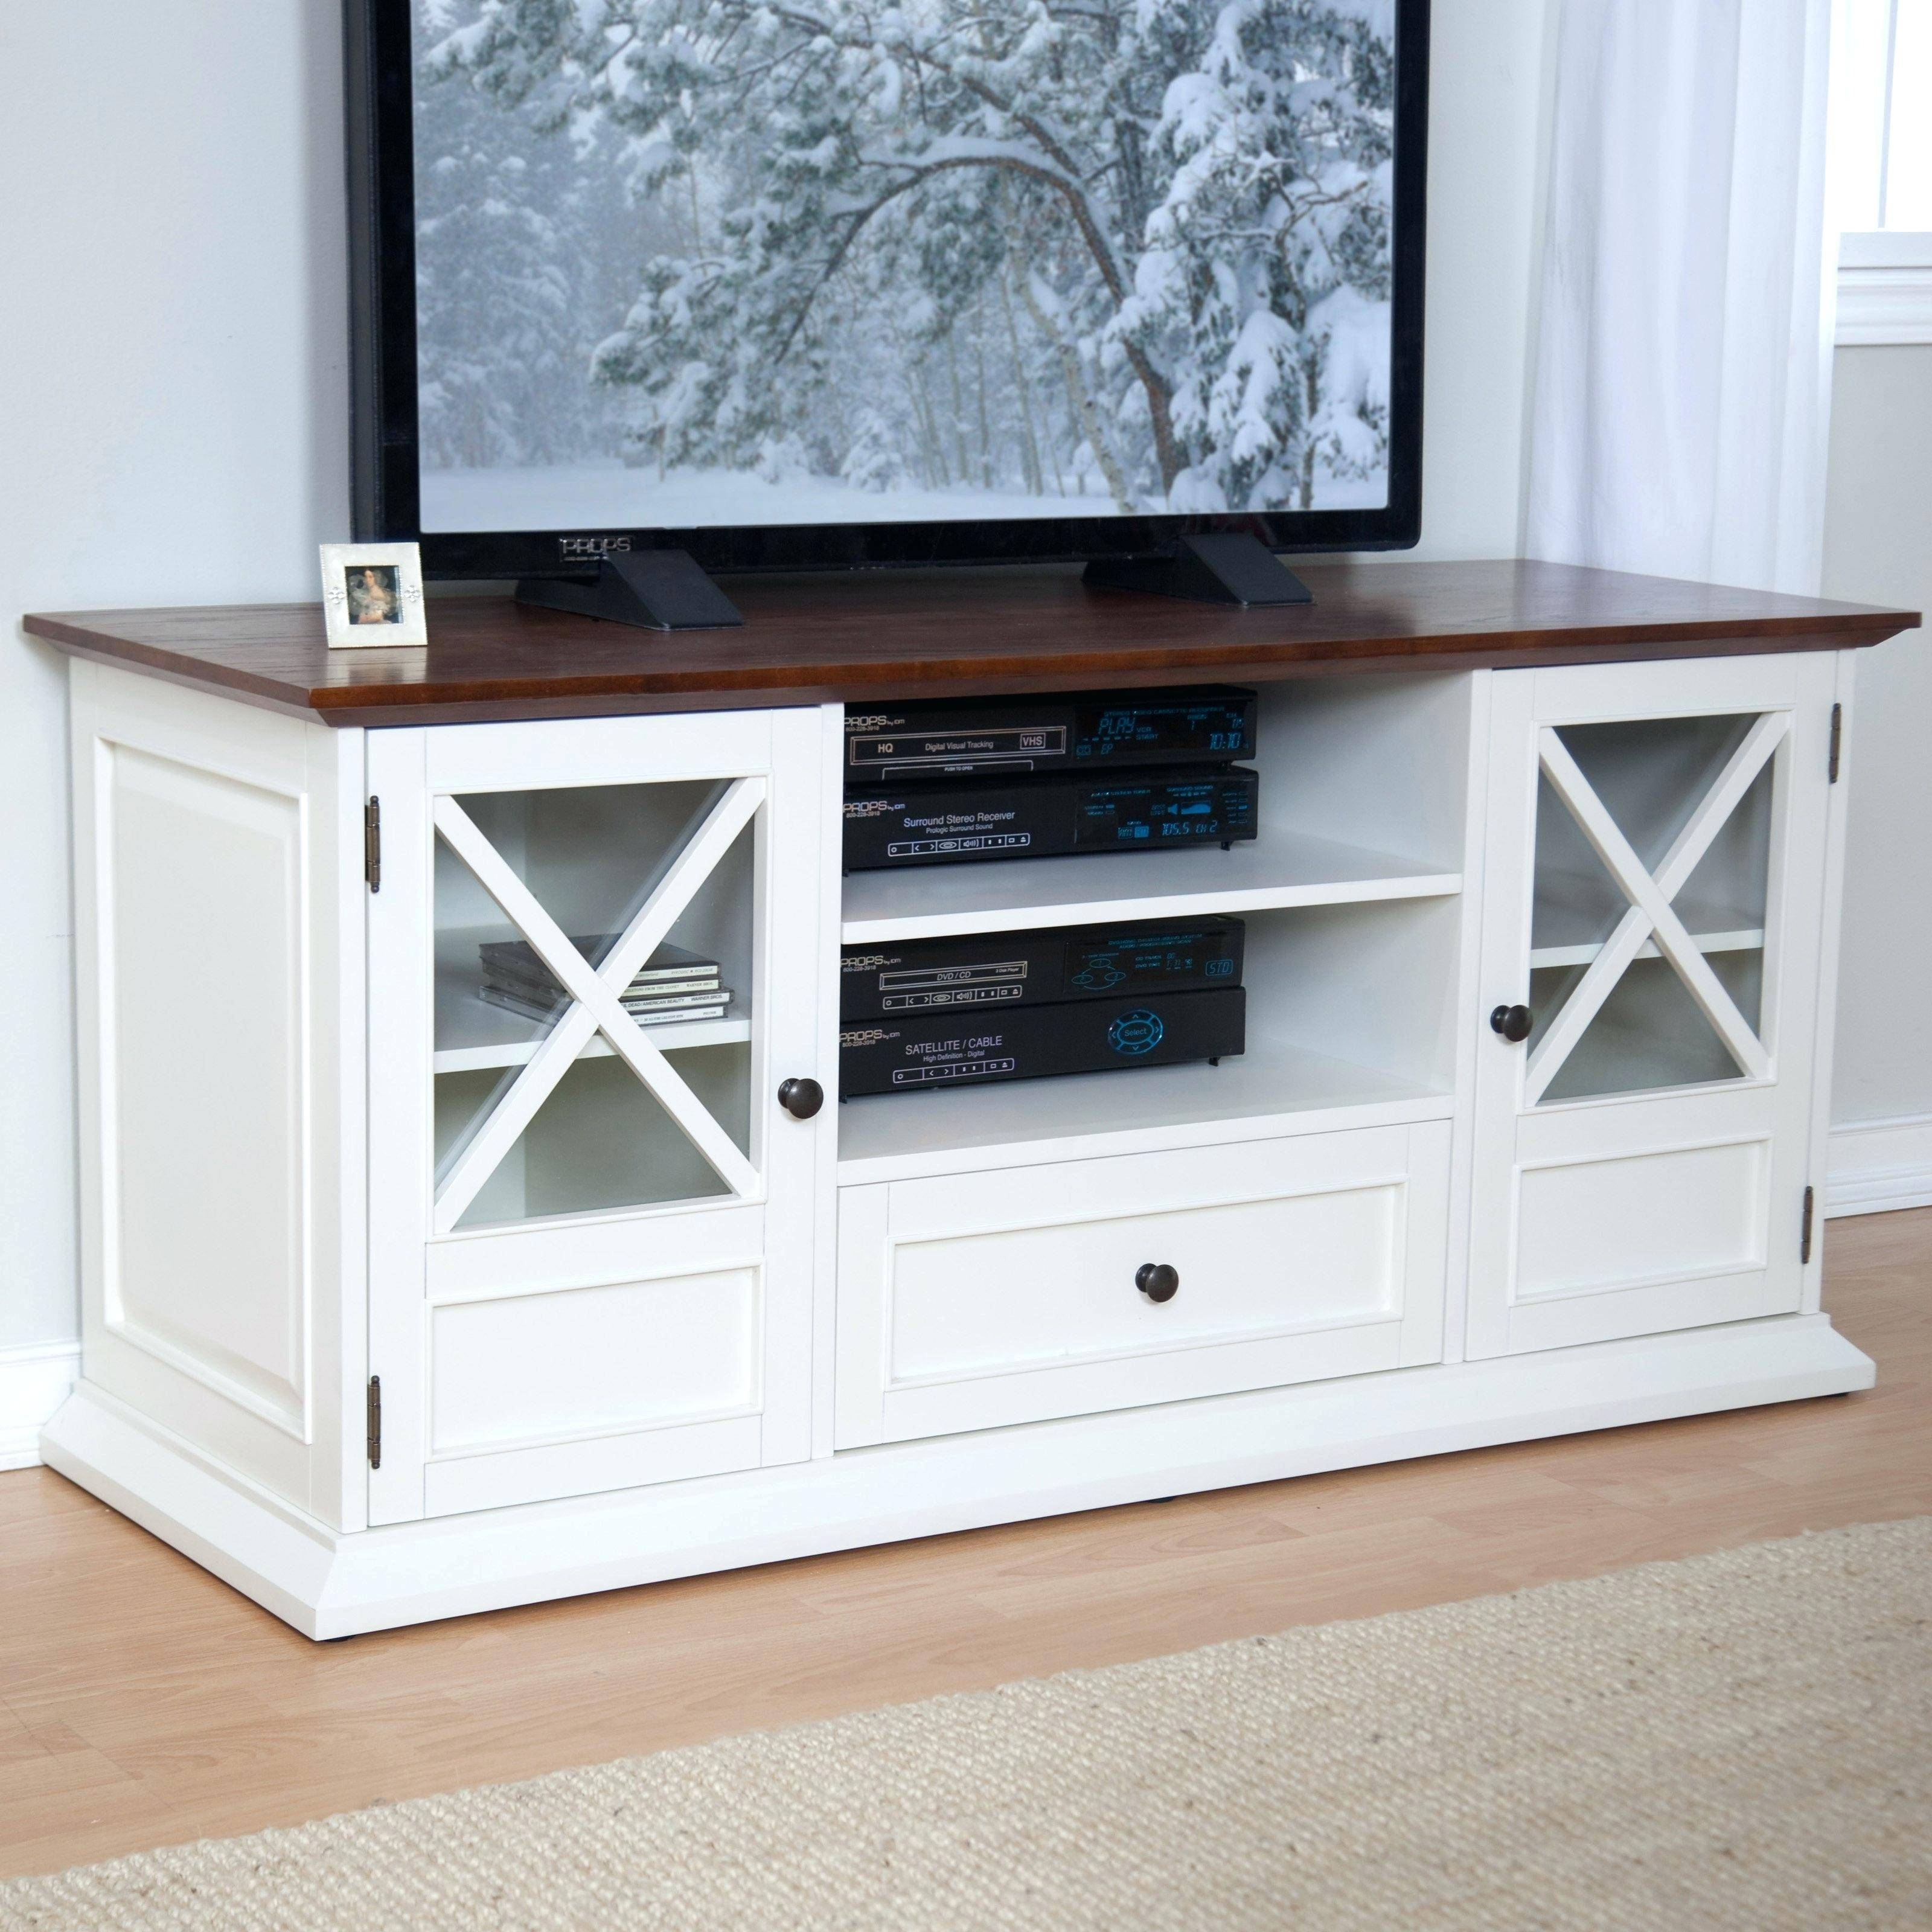 Tv Stand: Cozy 61 Inch Tv Stand Design. Tv Stand Design. Tv Stand in 61 Inch Tv Stands (Image 11 of 15)